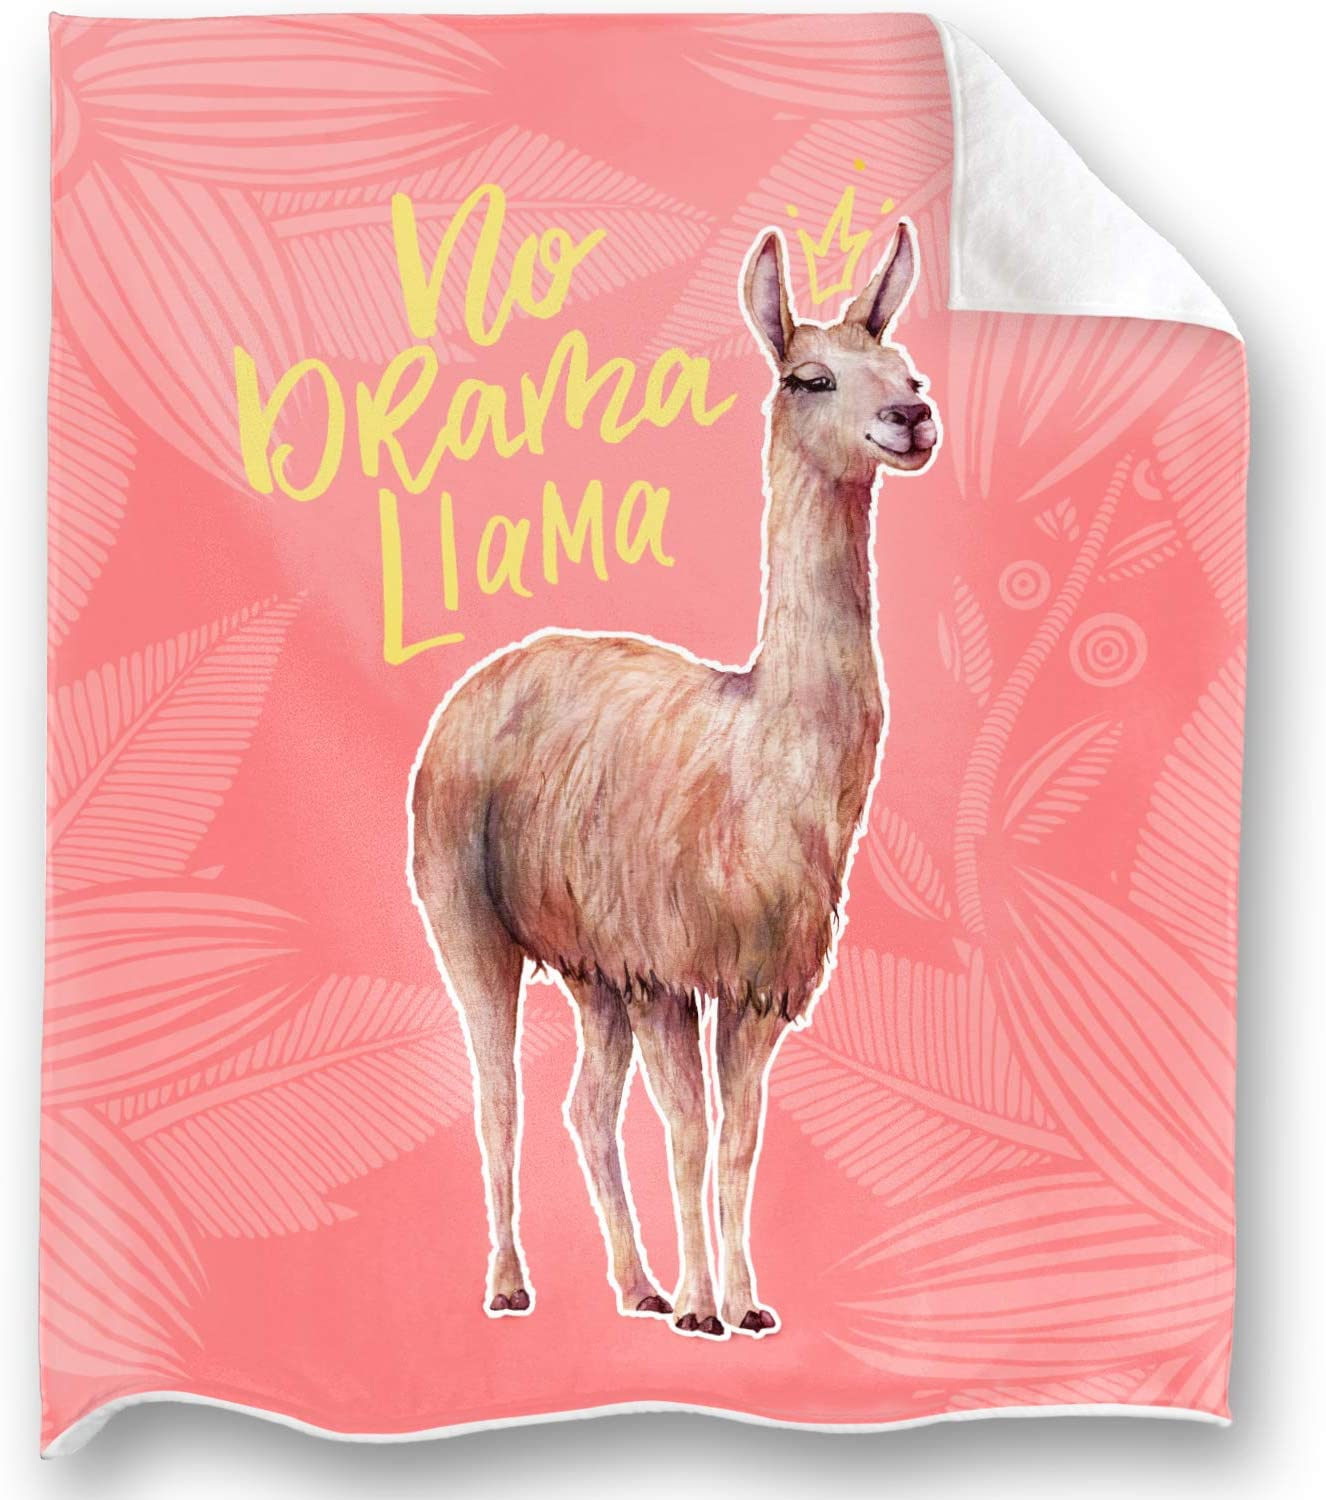 Loong Design Pink Llama Throw Blanket Super Soft, Fluffy, Premium Sherpa Fleece Blanket 50'' x 60'' Fit for Sofa Chair Bed Office Travelling Camping Gift